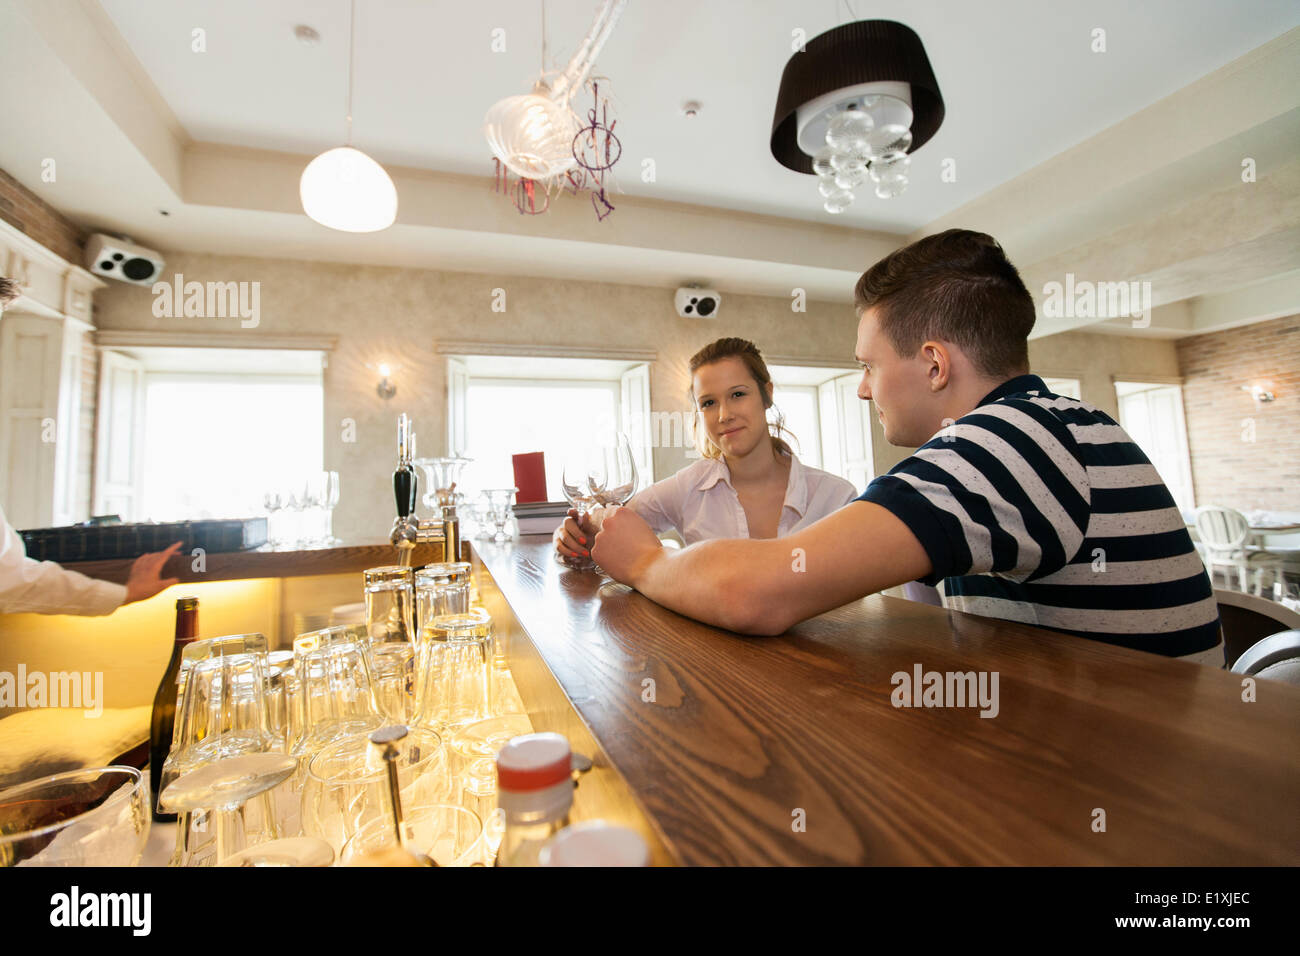 Portrait of young woman sitting with man at bar counter - Stock Image